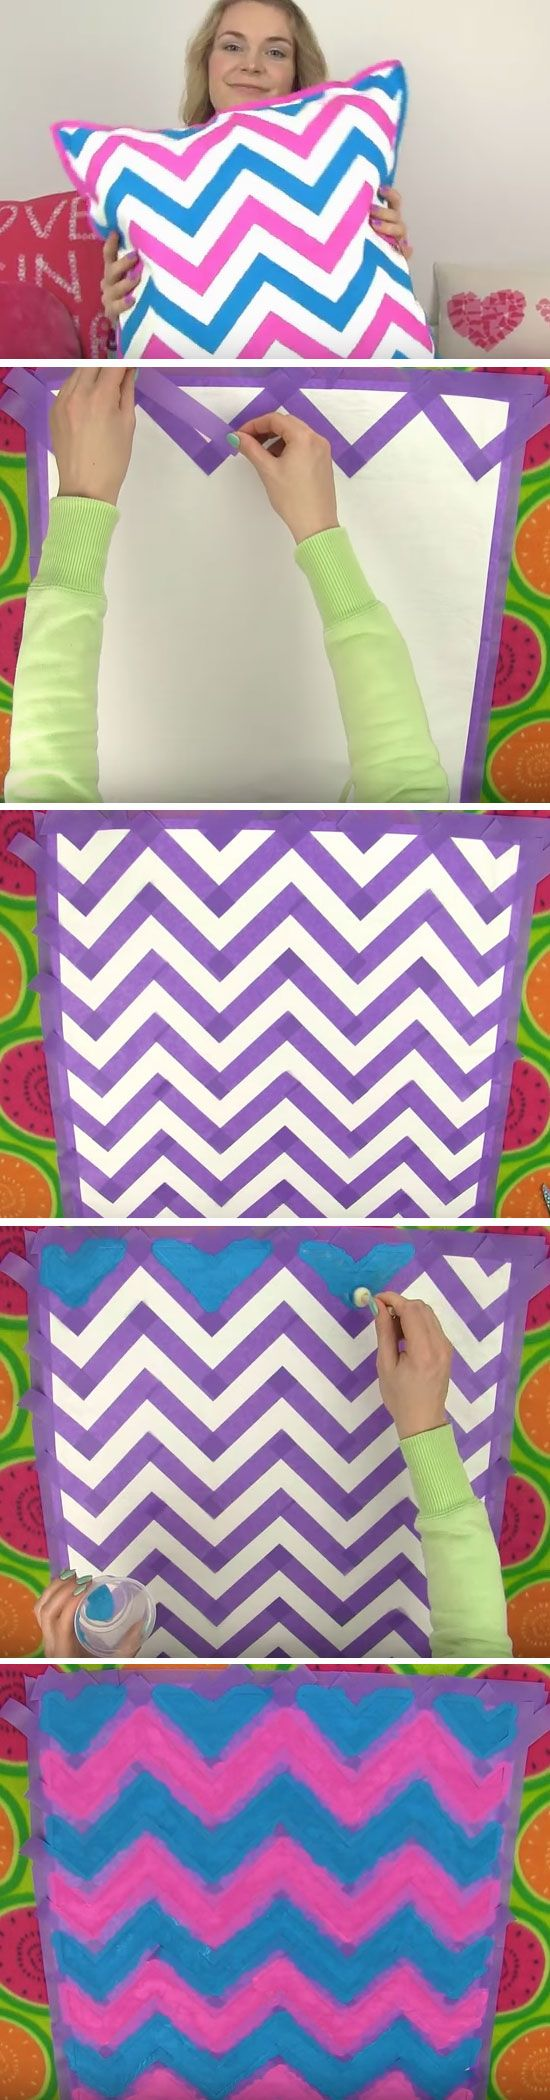 best fabric painting images on pinterest cool ideas dish towels